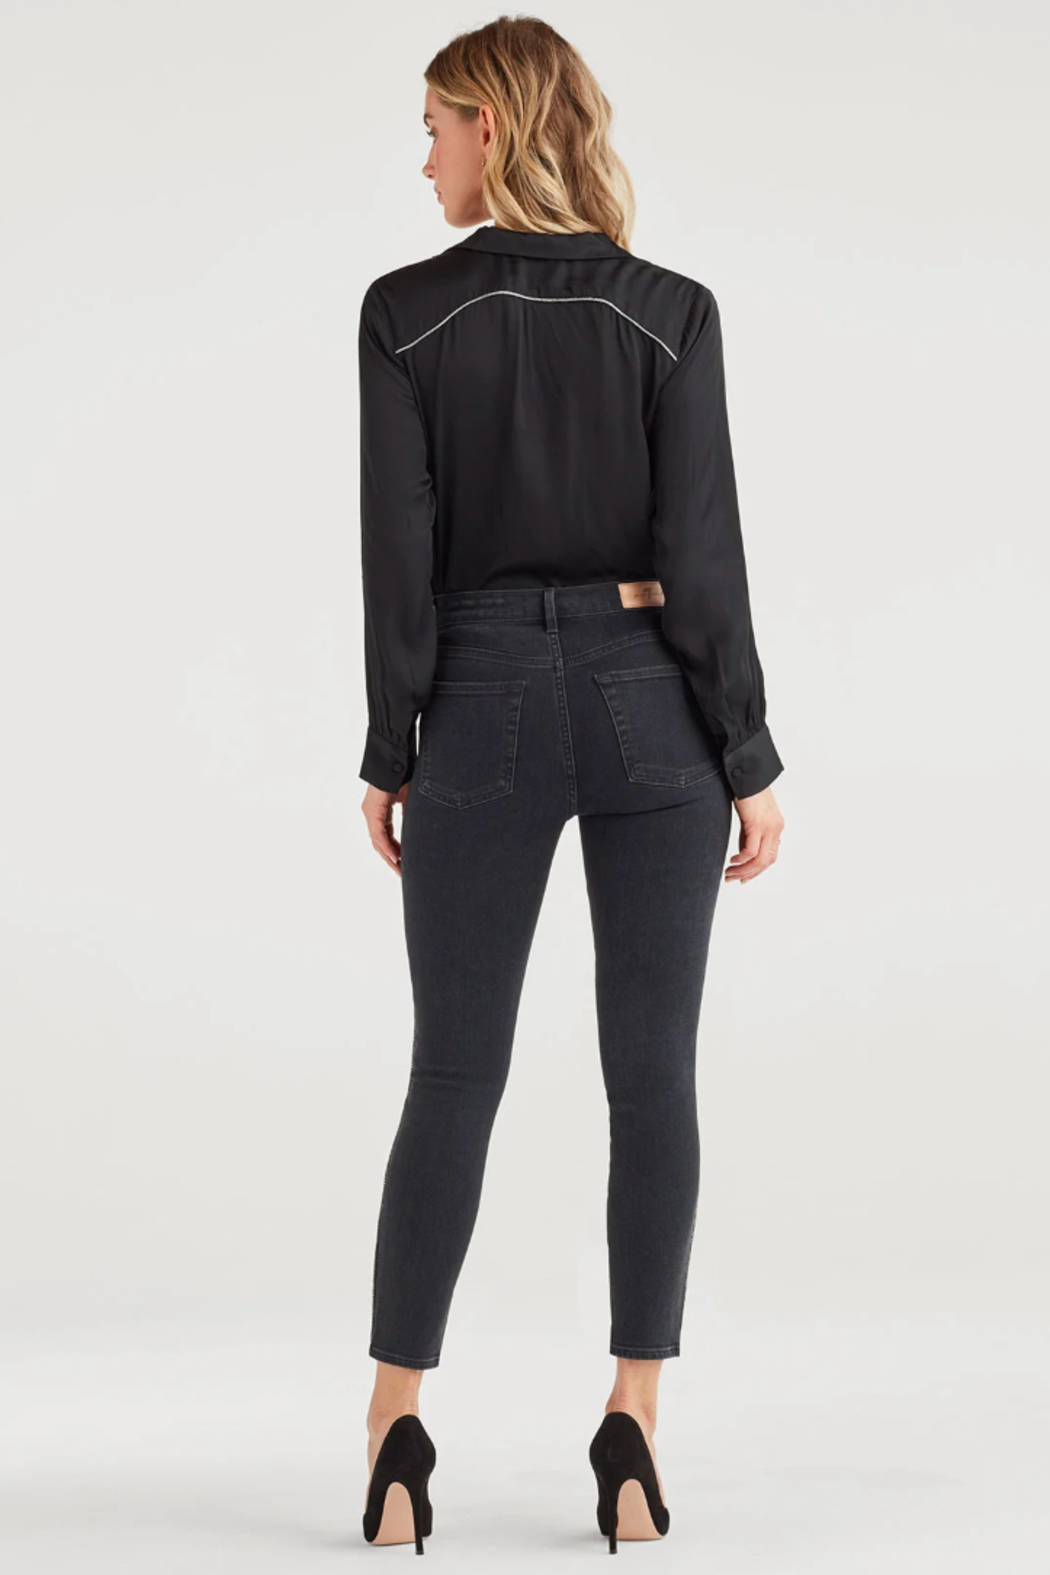 7 For all Mankind Luxe Vintage High Waist Ankle Skinny with Snake Piping in Moon Shadow - Side Cropped Image